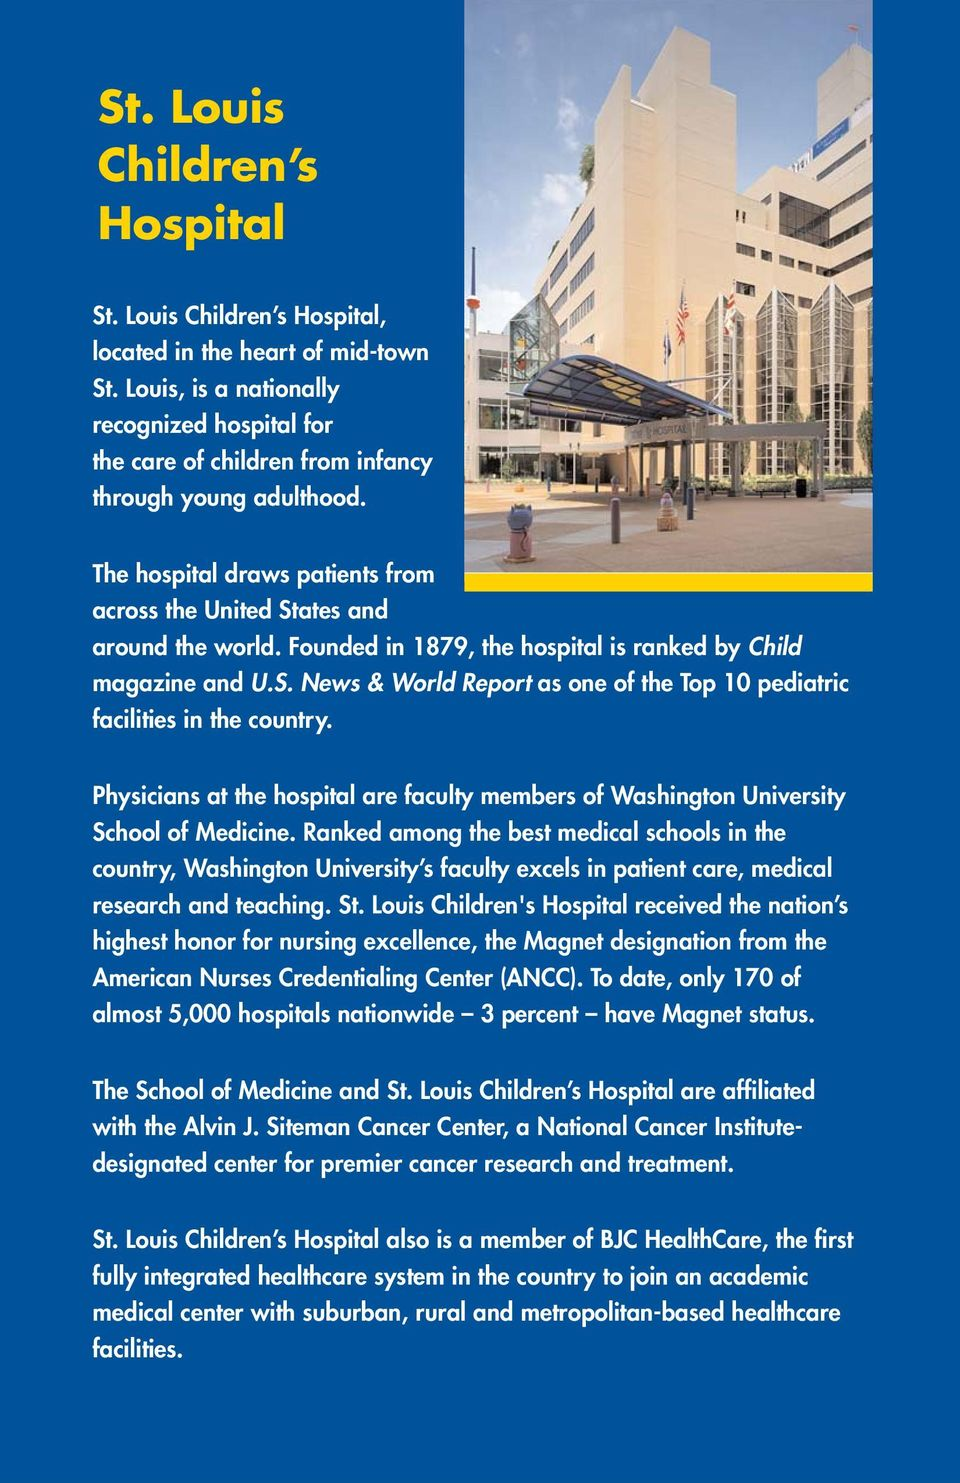 Founded in 1879, the hospital is ranked by Child magazine and U.S. News & World Report as one of the Top 10 pediatric facilities in the country.